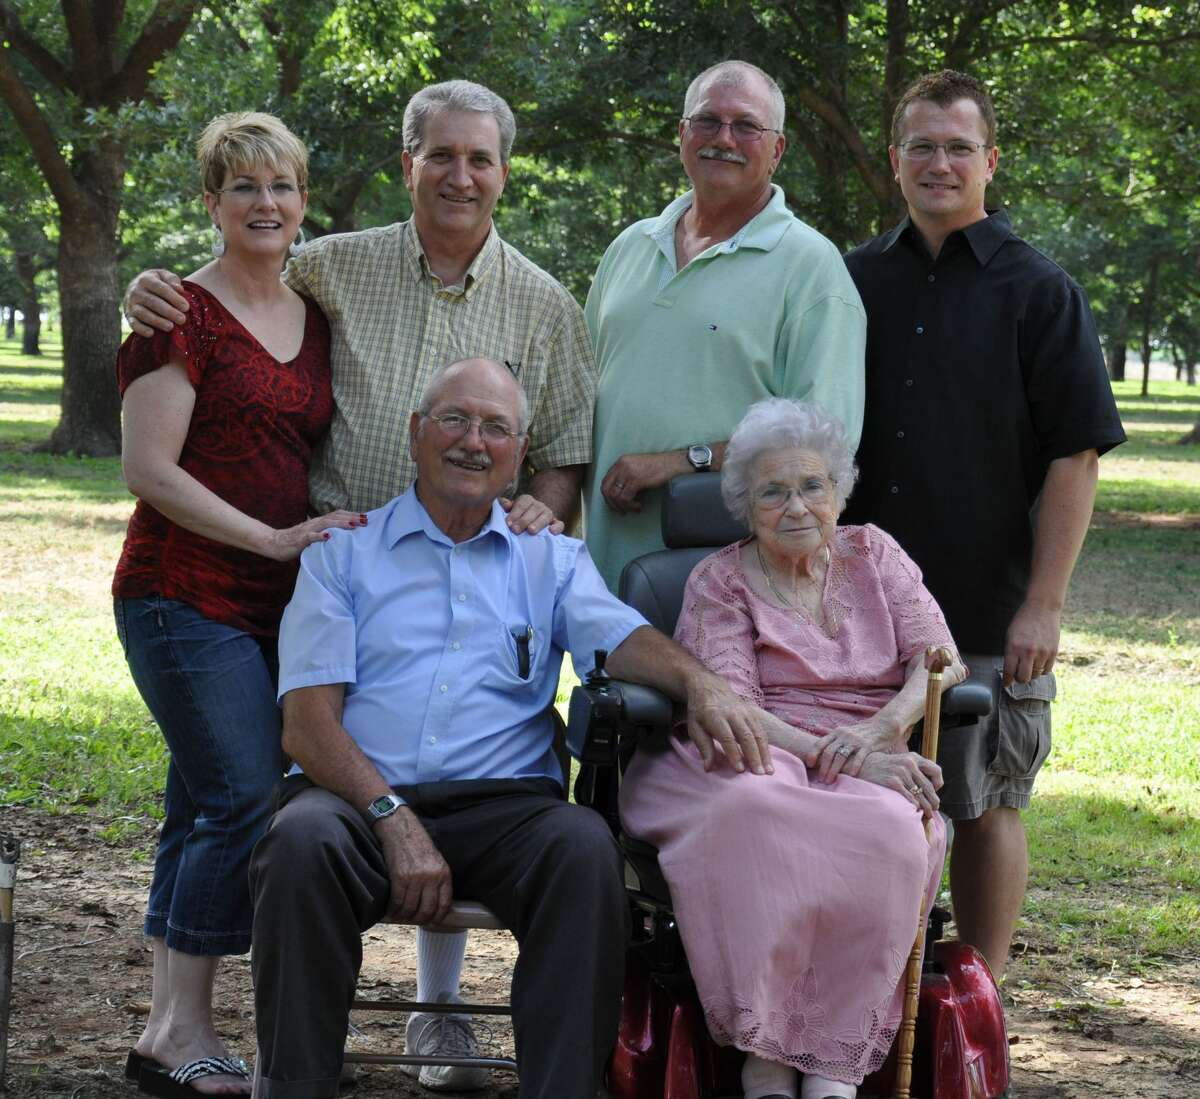 Hart Days 2018 Parade Marshals Longtime Hart residents Robert and Leta Mae Hawkins are being honored as Hart Days 2018 Parade Marshals. The couple is shown with their children: Lesa Dwyer (back left) and sons David, Theron and Phillip Hawkins. Robert and Leta Mae are deceased and the first Parade Marshals to be honored posthumously. Three of their children will represent them in the Hart Days Parade on Saturday, July 28.